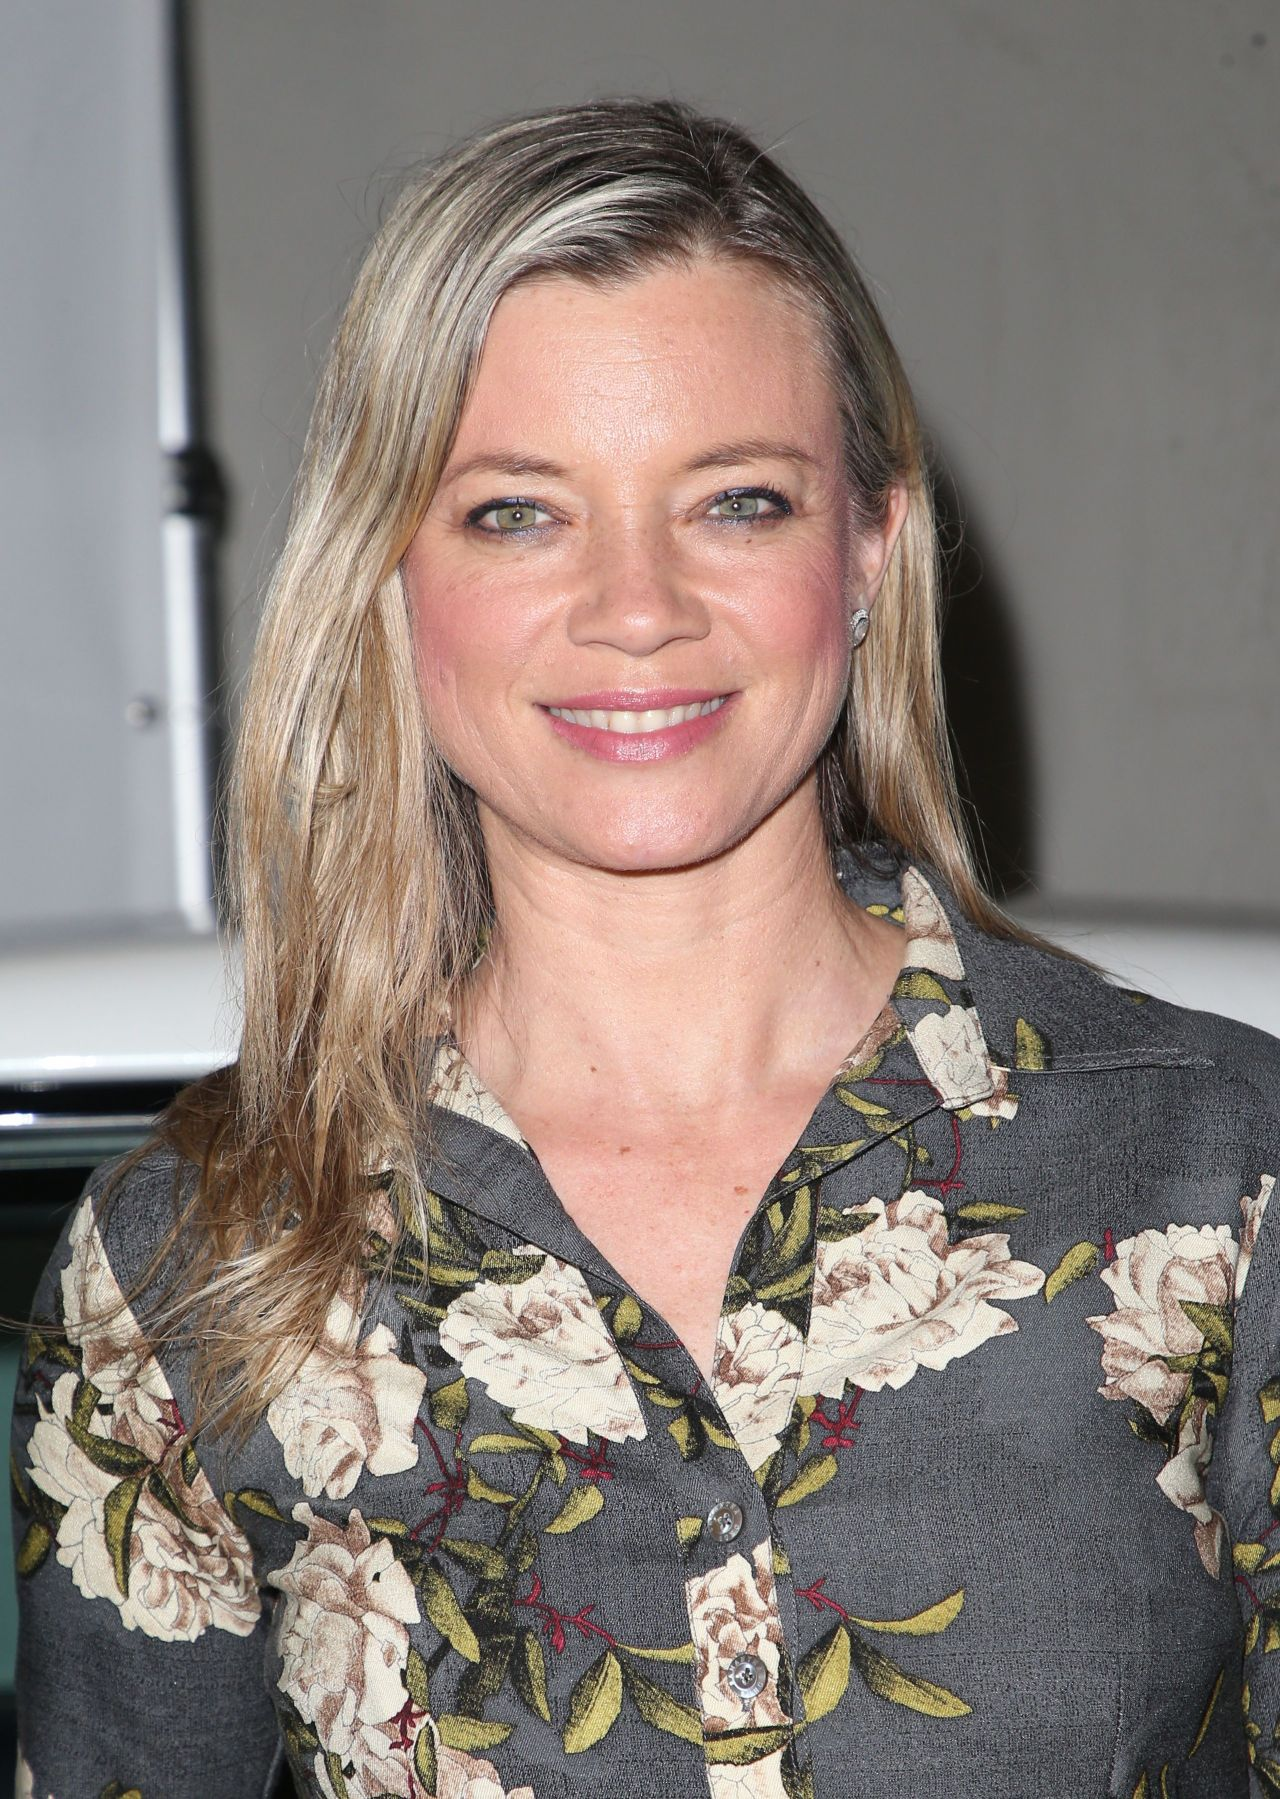 Images Amy Smart nudes (81 photo), Topless, Fappening, Selfie, swimsuit 2006